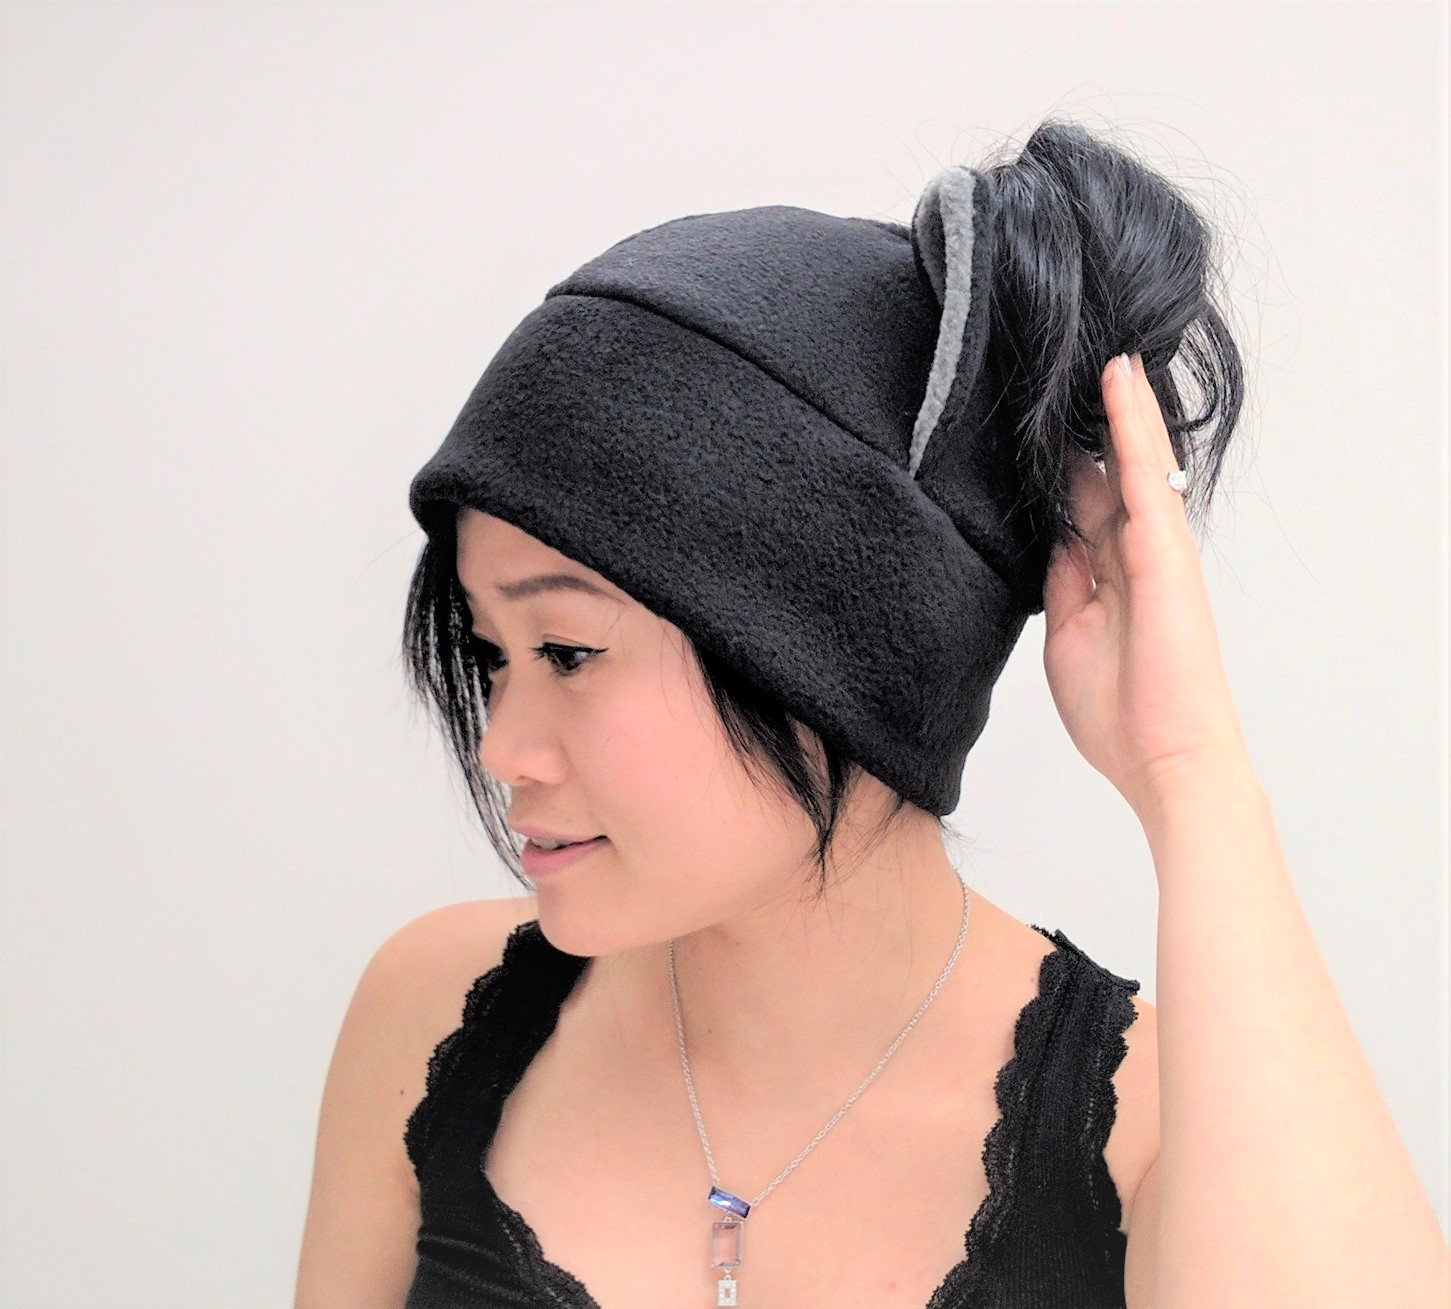 ... Ponytail Hat - Winter Ponytail Hat - Messy Bun Hat - Running Hat -  Messy Bun 66d6a749d78